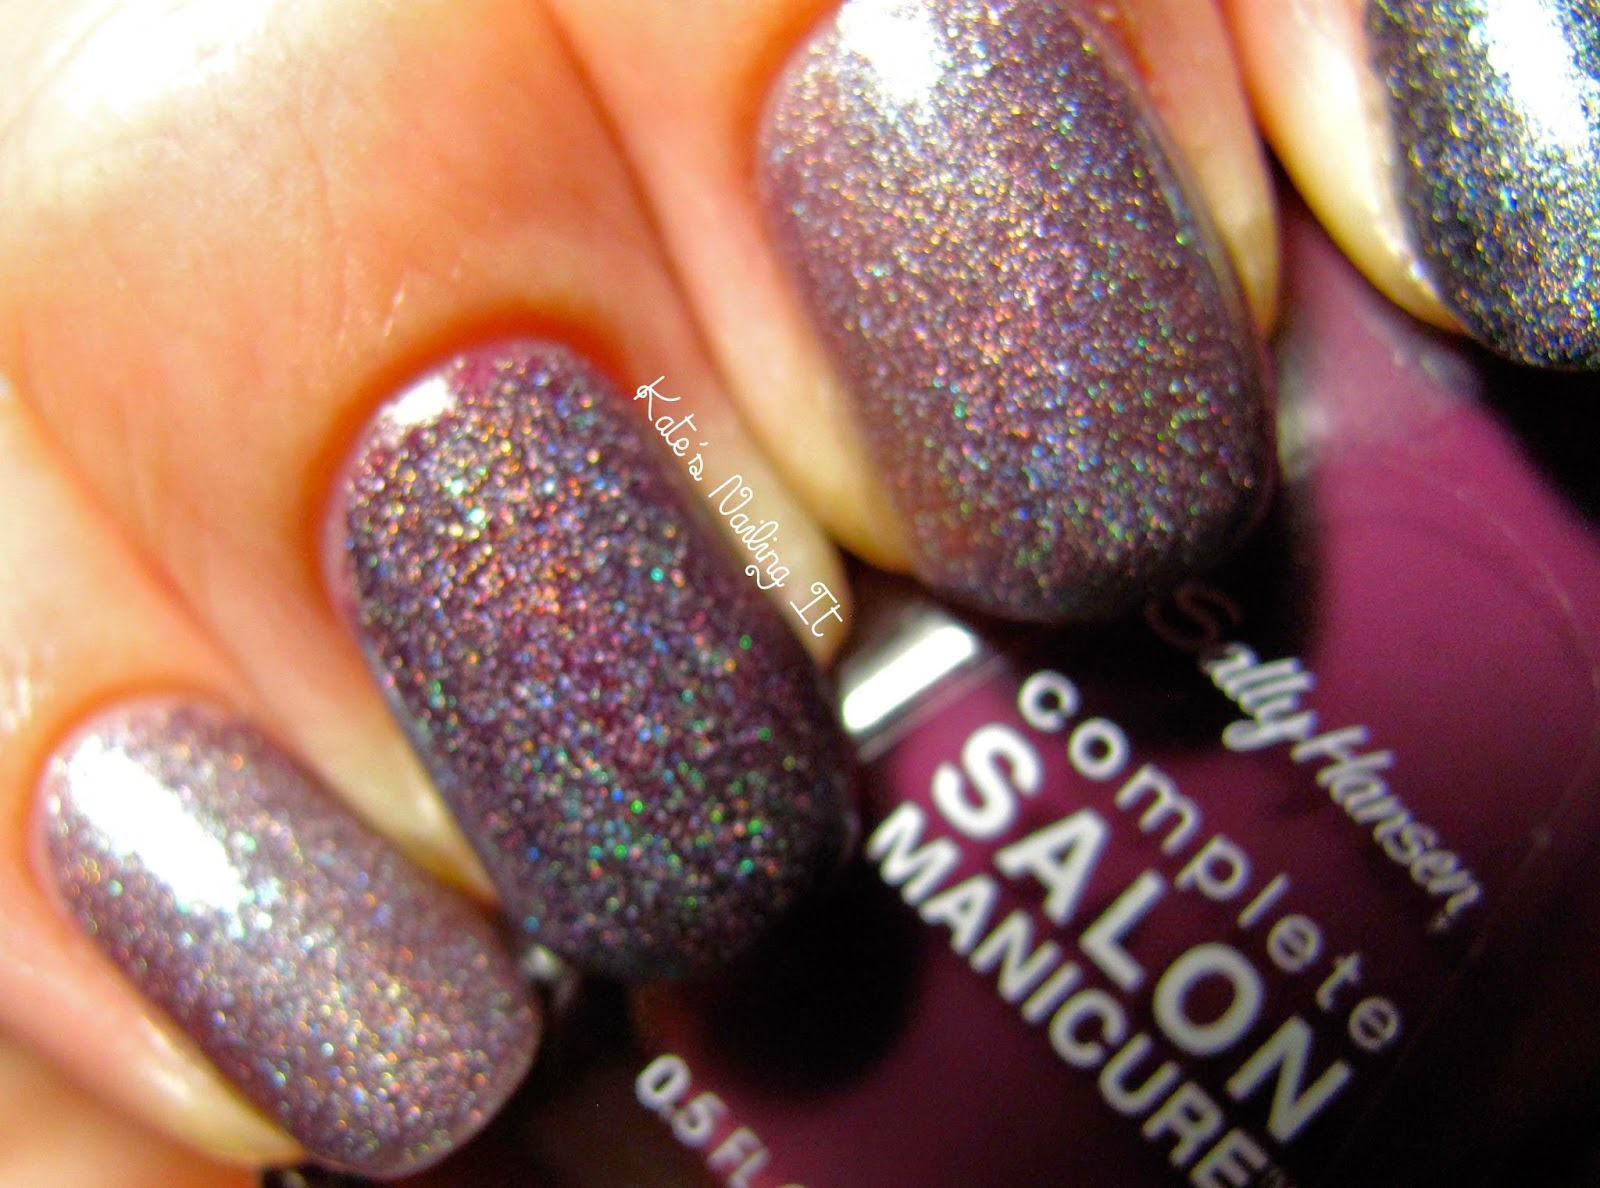 Kates Nailing It September 2014 Austin Sandal Mitzi Silver Nightfall Is Not As Sheer Mermaid Scales Two Coats Looked Great But Was Still A Liiiittle Bit For My Taste So I Went Up To Three